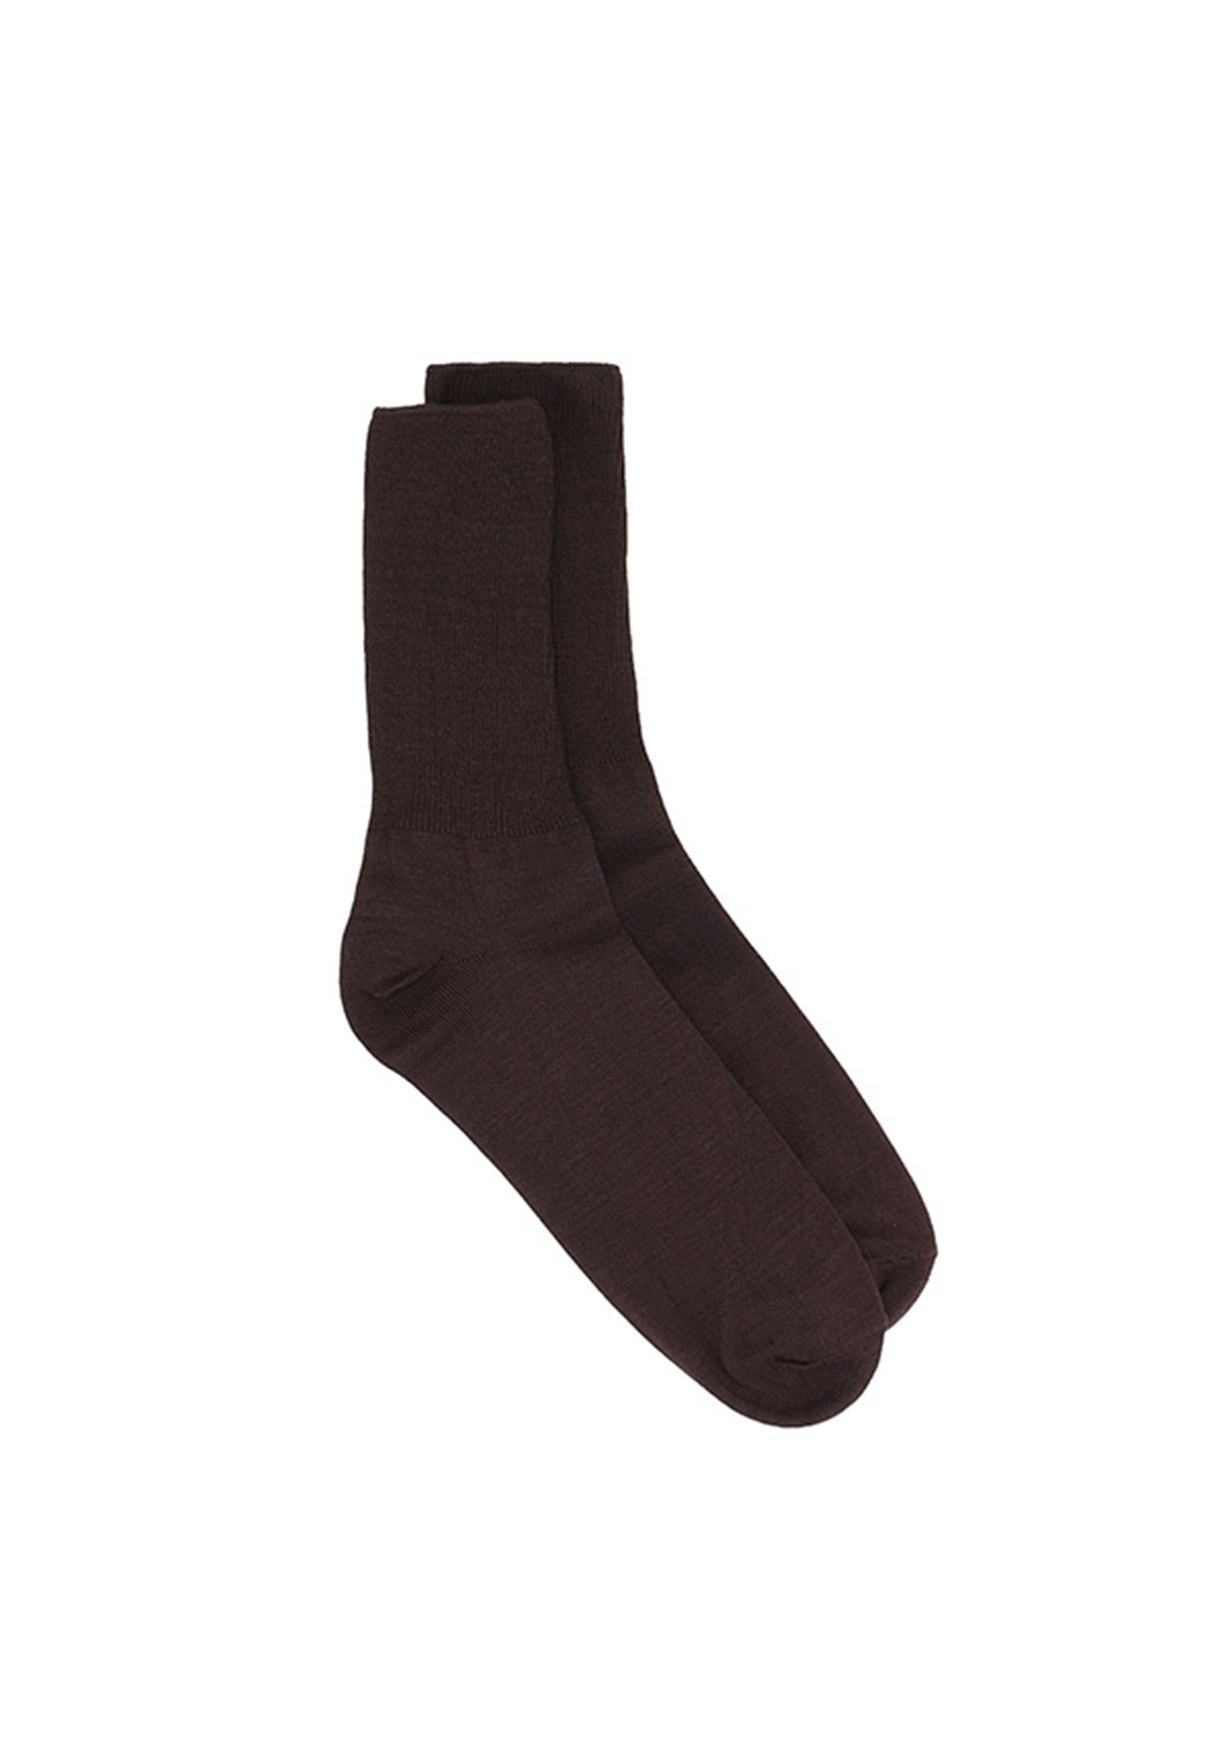 Free Day Mens Socks